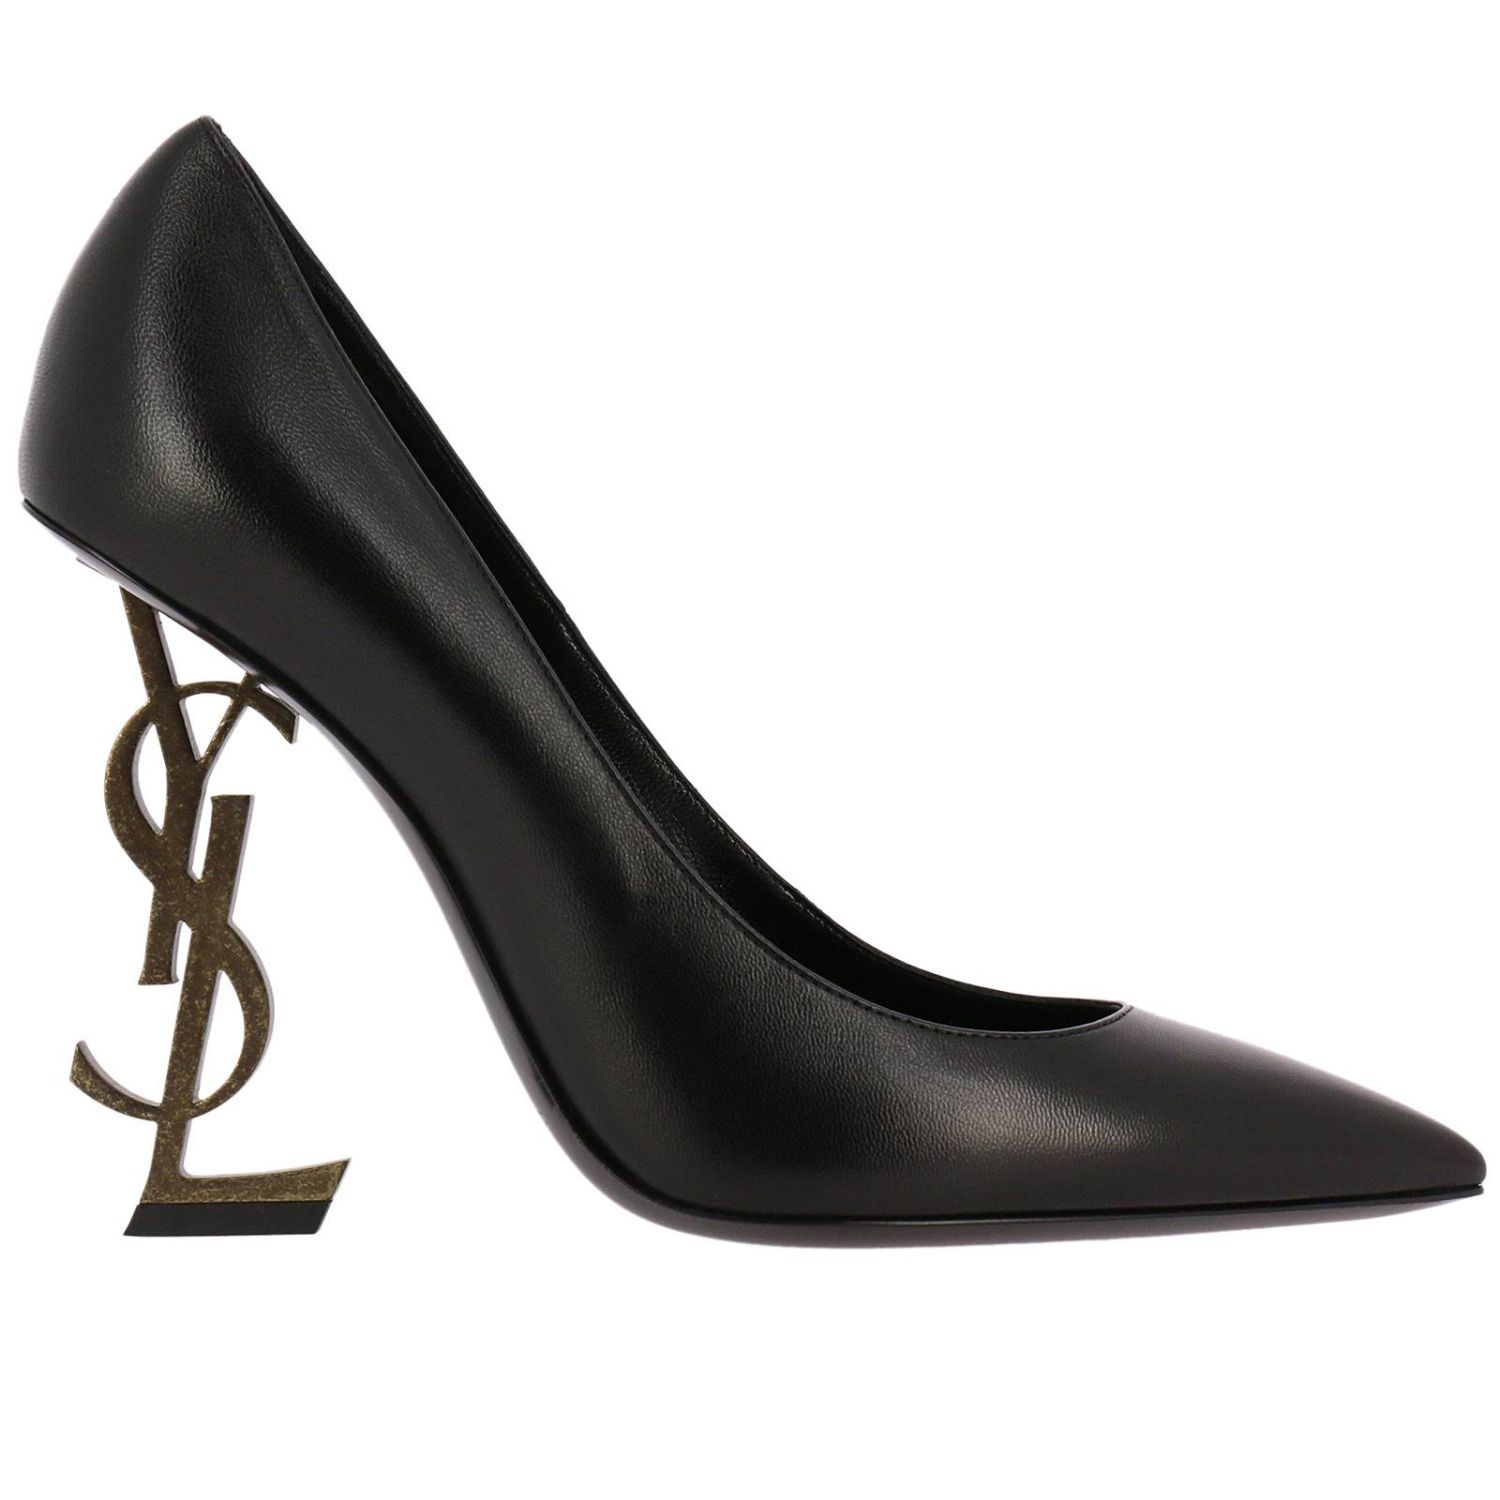 Pumps Ysl Opyum Shoes Pumps In Brushed Leather With Textured Ysl Metal Heel 8341701